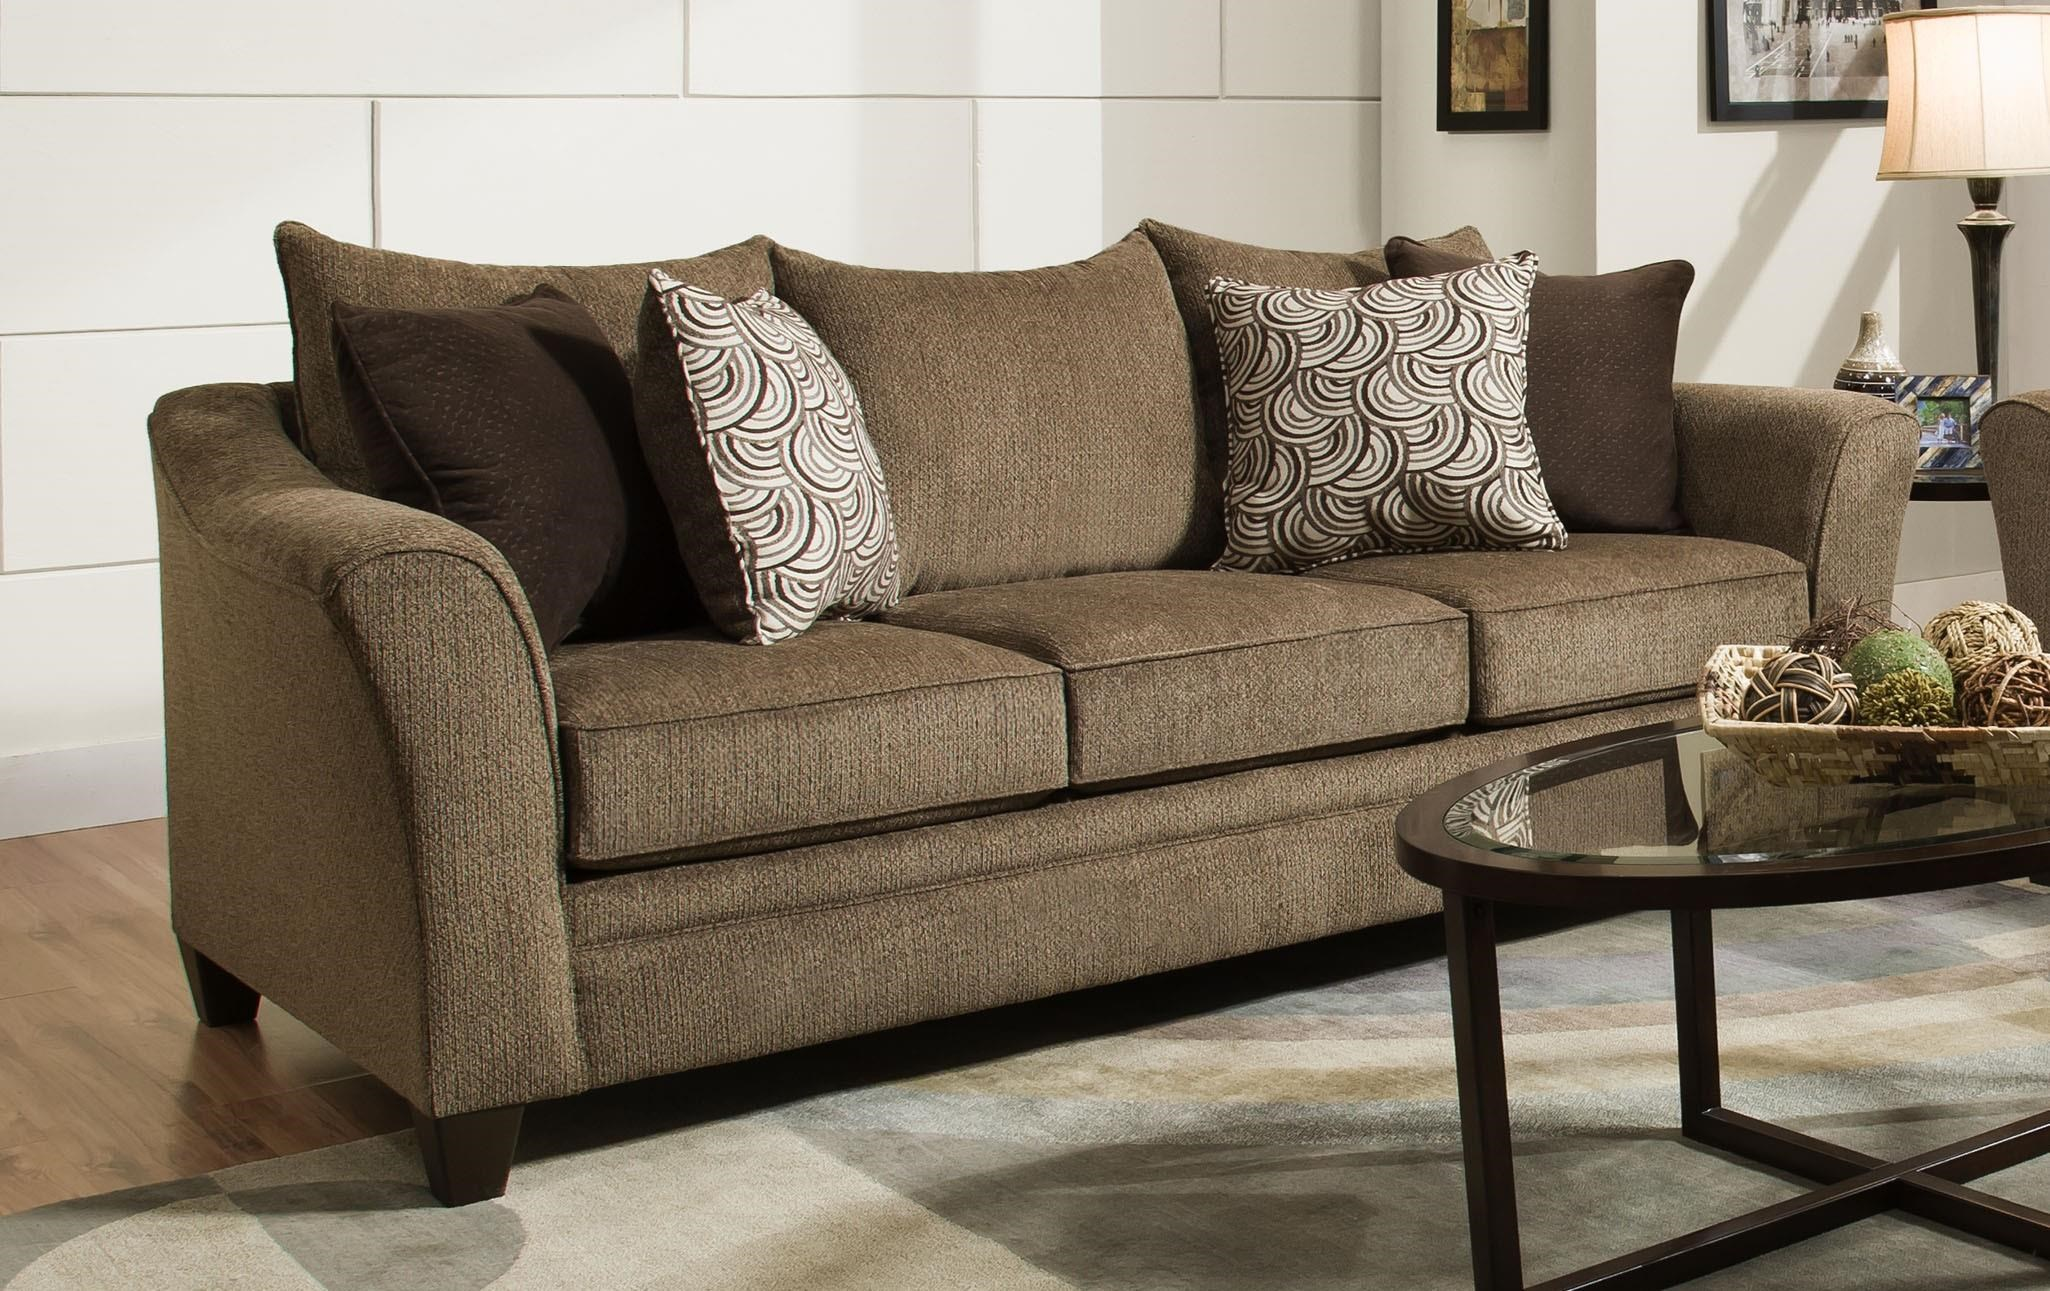 United Furniture Industries 6485 Transitional Queen Slepper Sofa - Item Number: 6485trufflesleeper